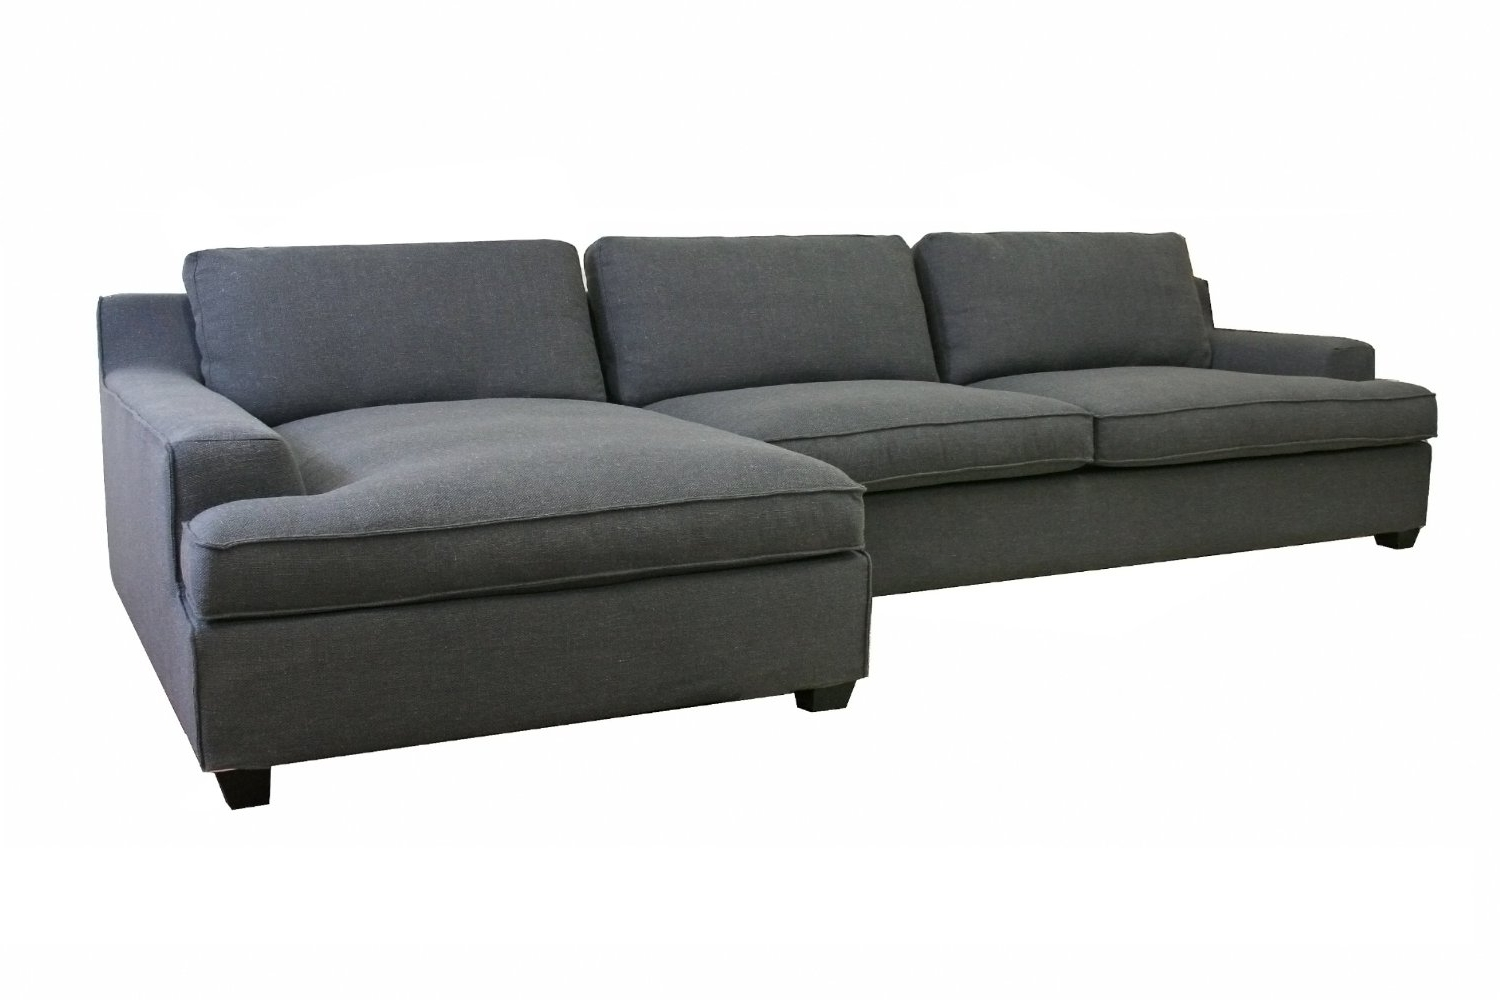 Sofa Chaise Sleepers Pertaining To Most Current Sectional Sofa Design: Sleeper Sofa With Chaise Best Ever (View 11 of 15)